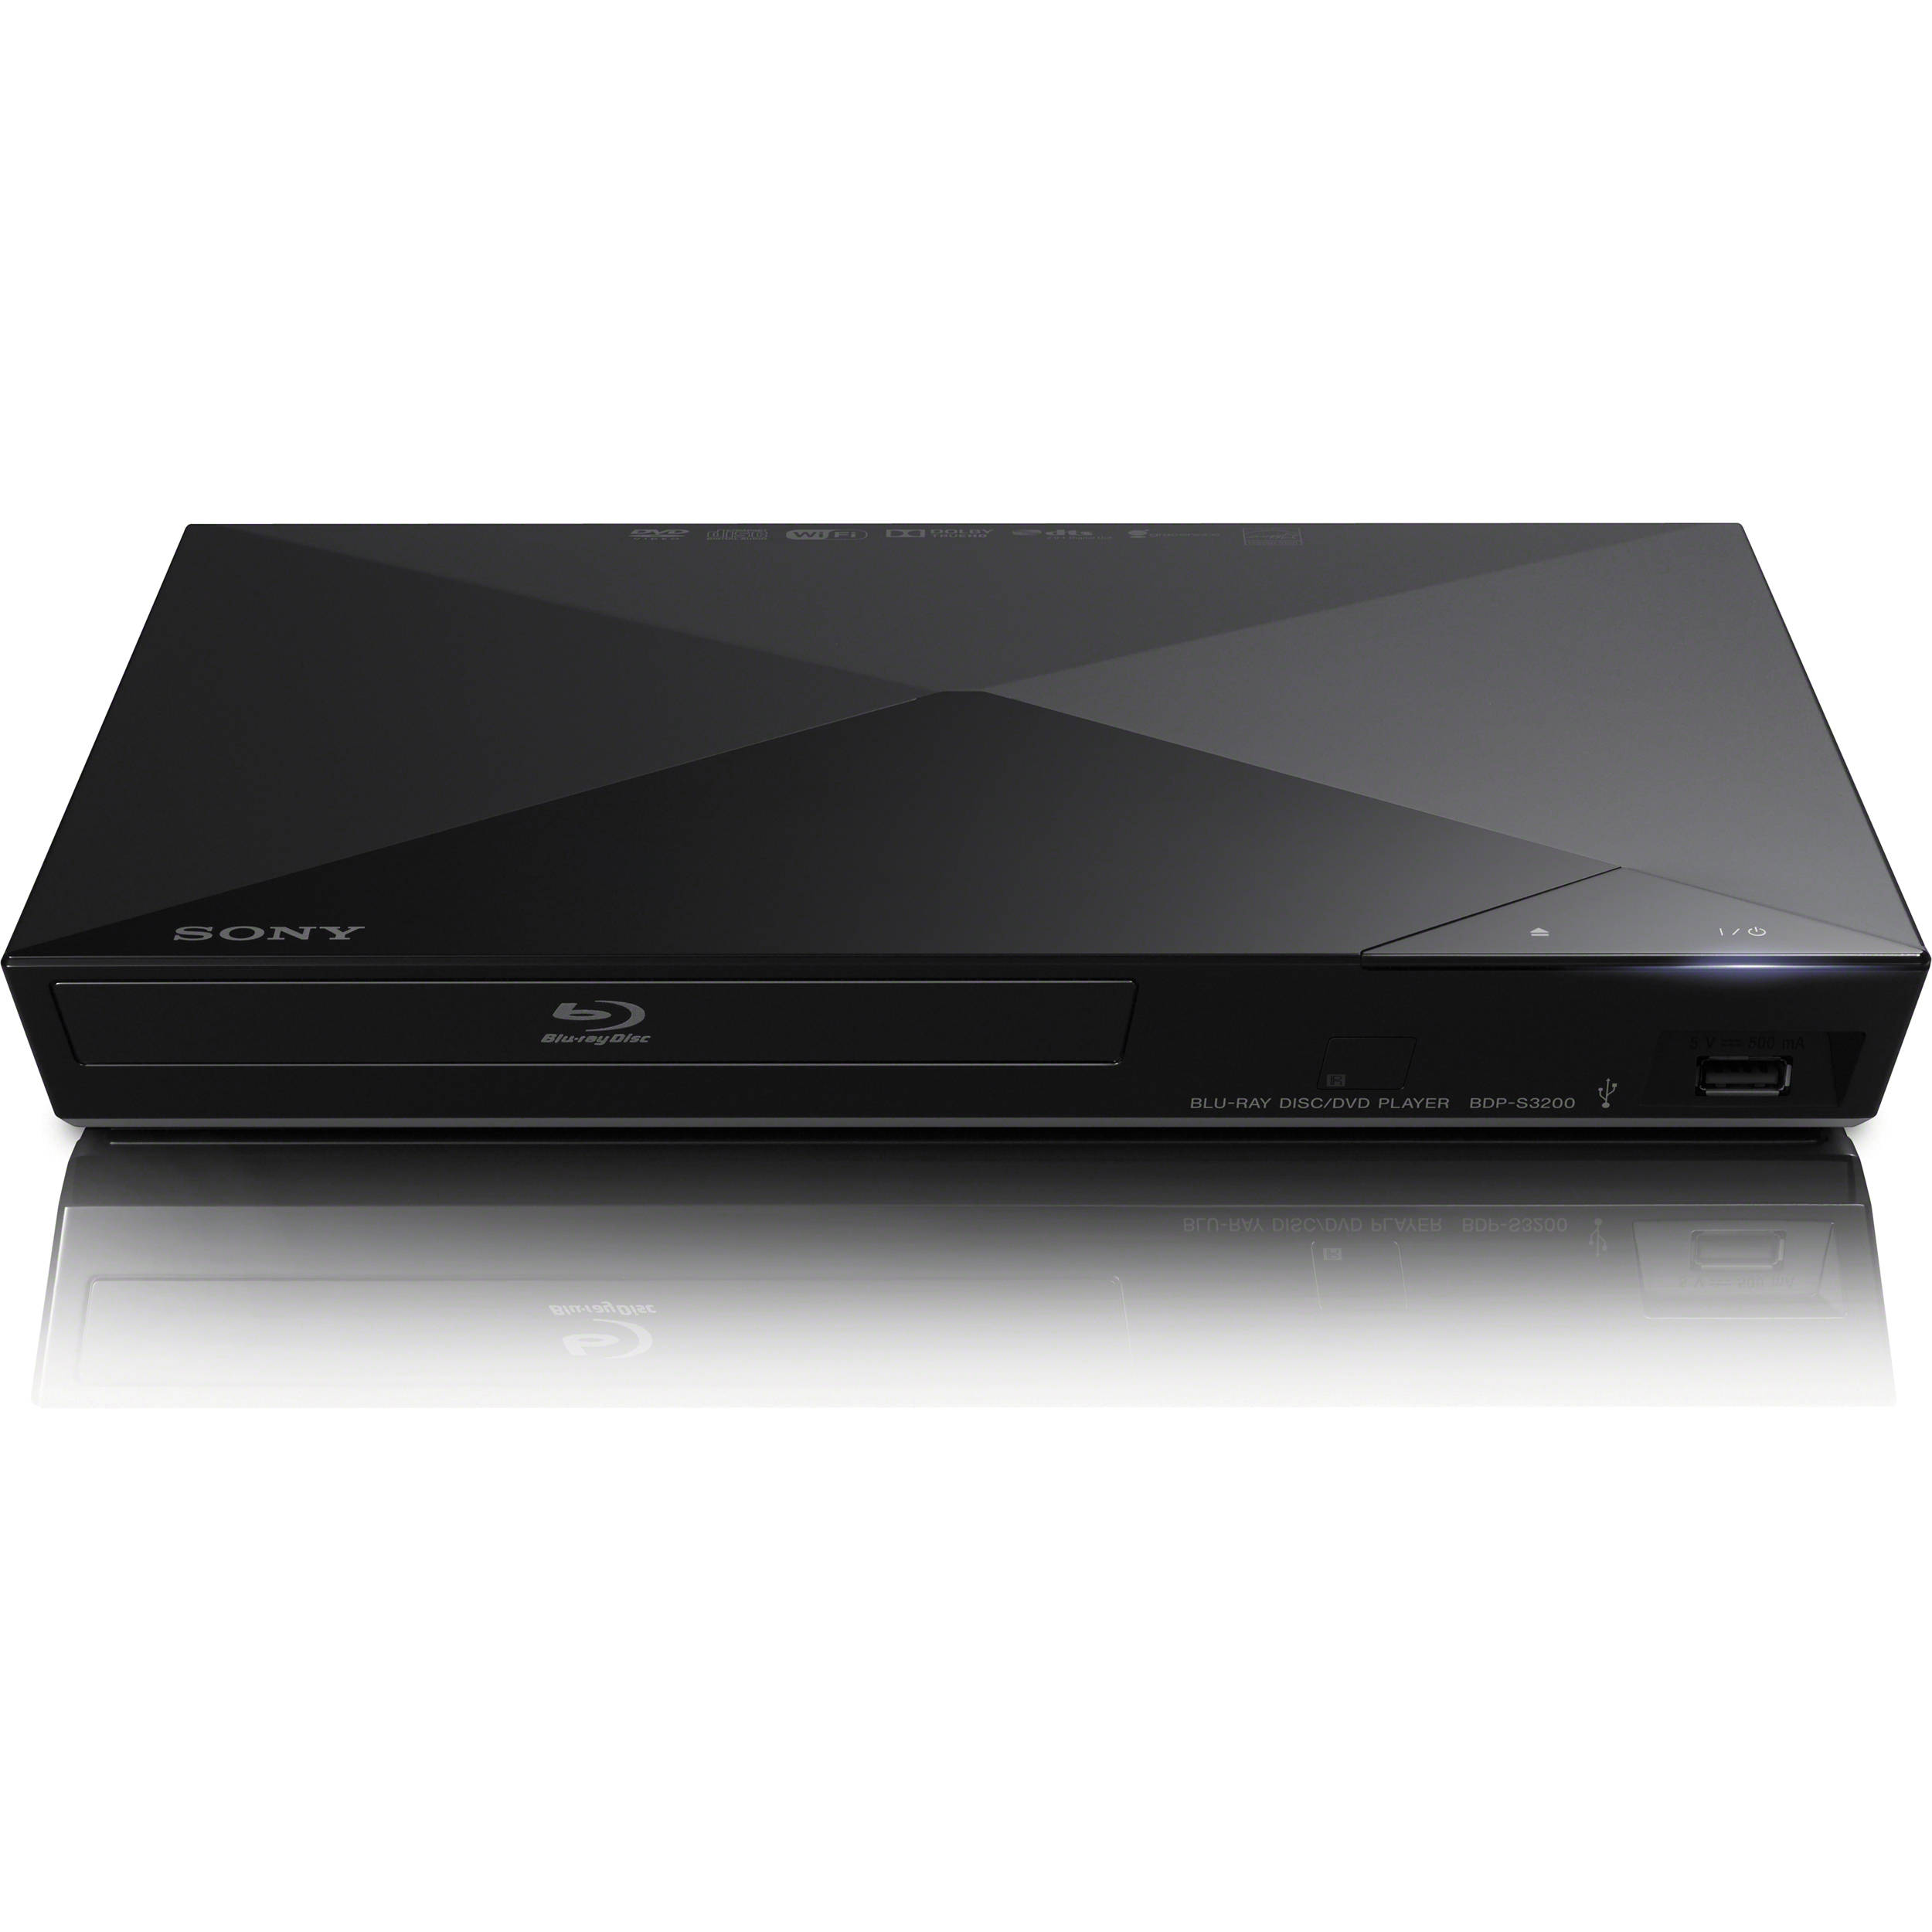 sony bdp s3200 wi fi blu ray disc player bdp s3200 b h photo. Black Bedroom Furniture Sets. Home Design Ideas